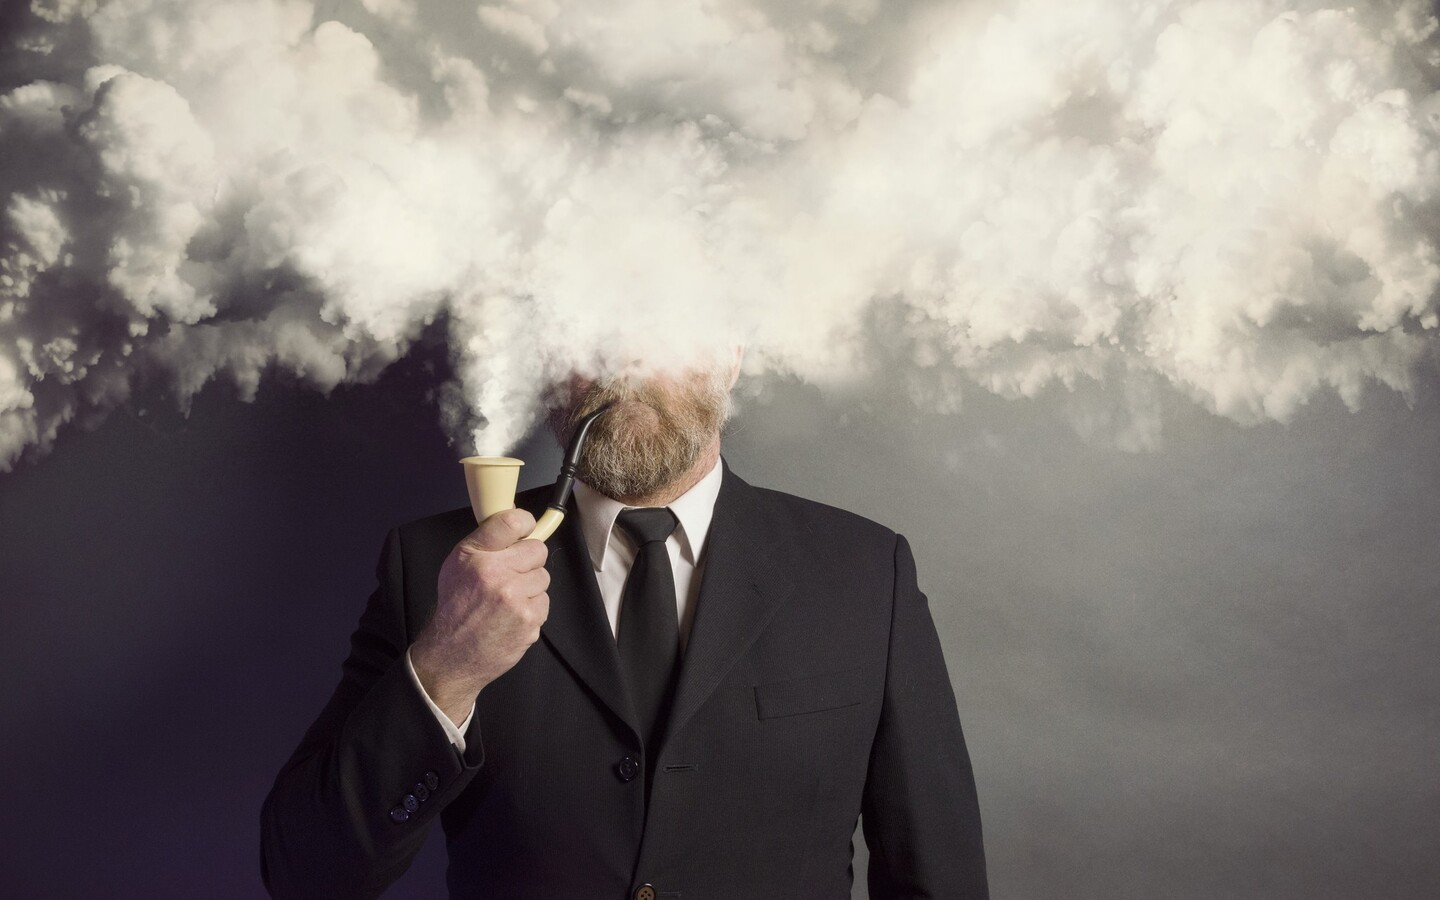 smoking-beard-man.jpg